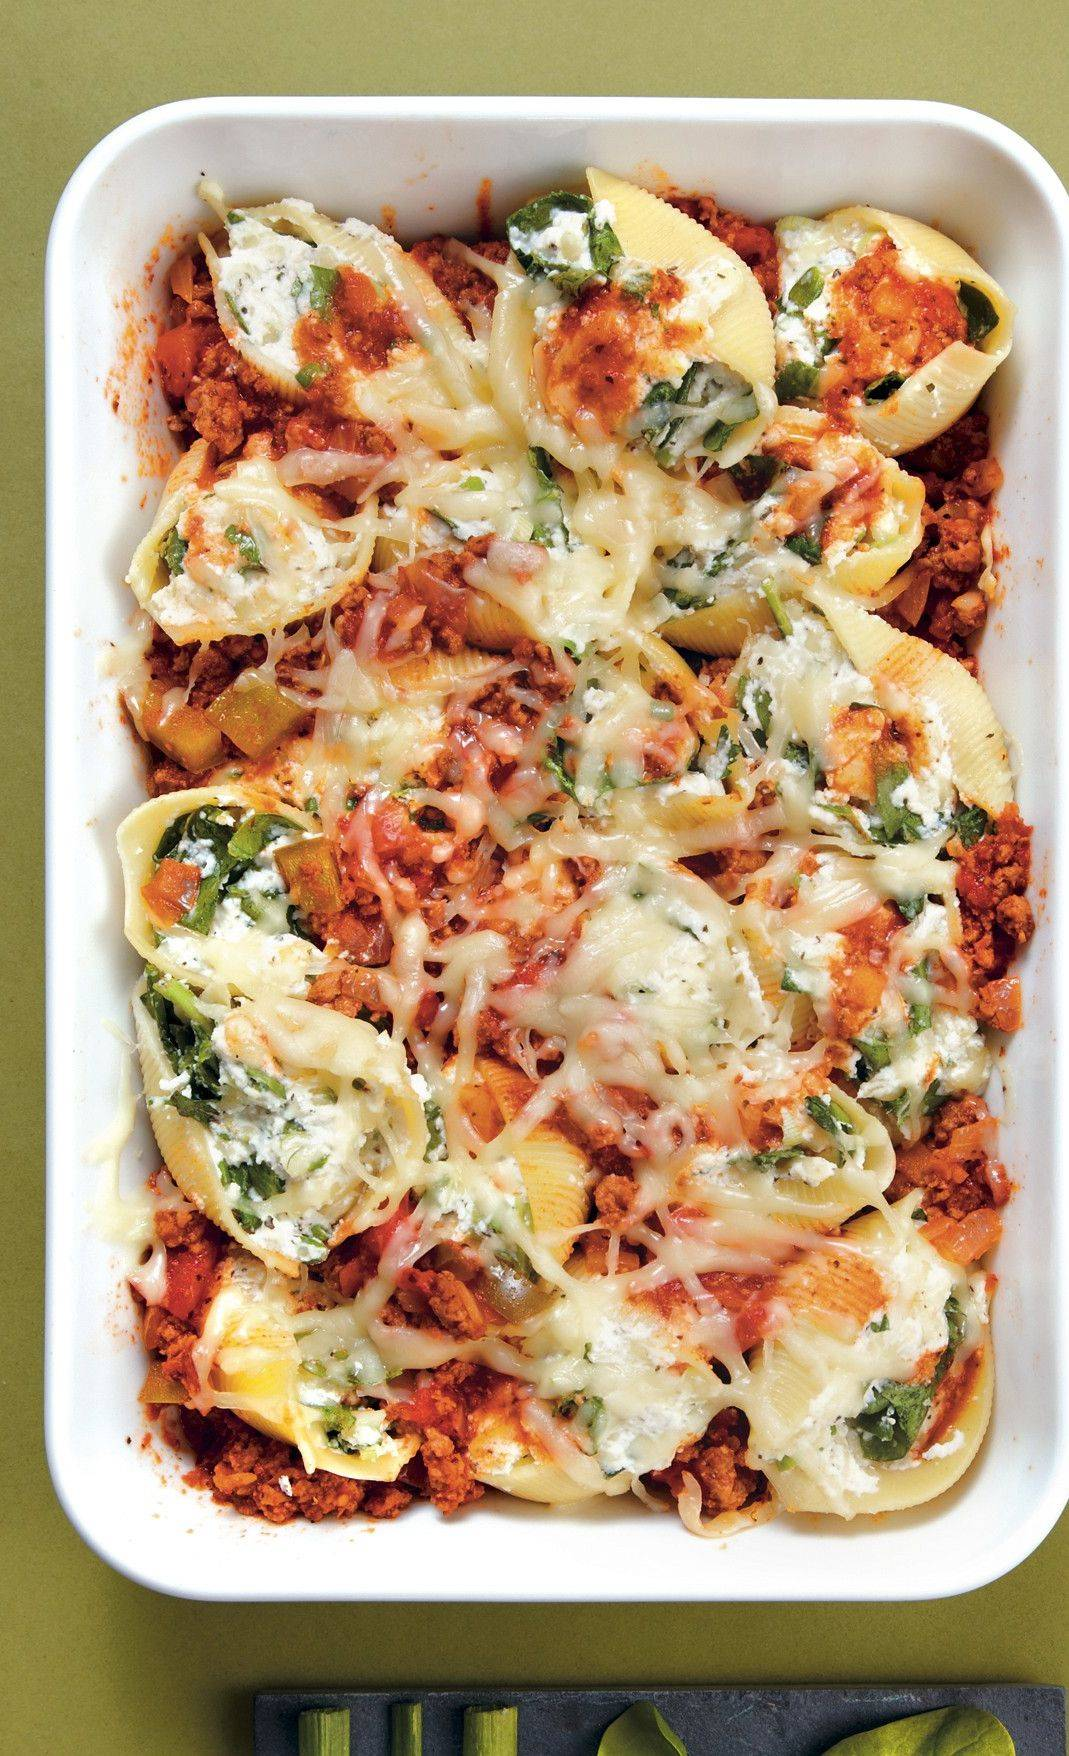 Frozen spinach goes into these stuffed shells from Southern Living�s �Fix it & Freeze it Heat it & Eat it.